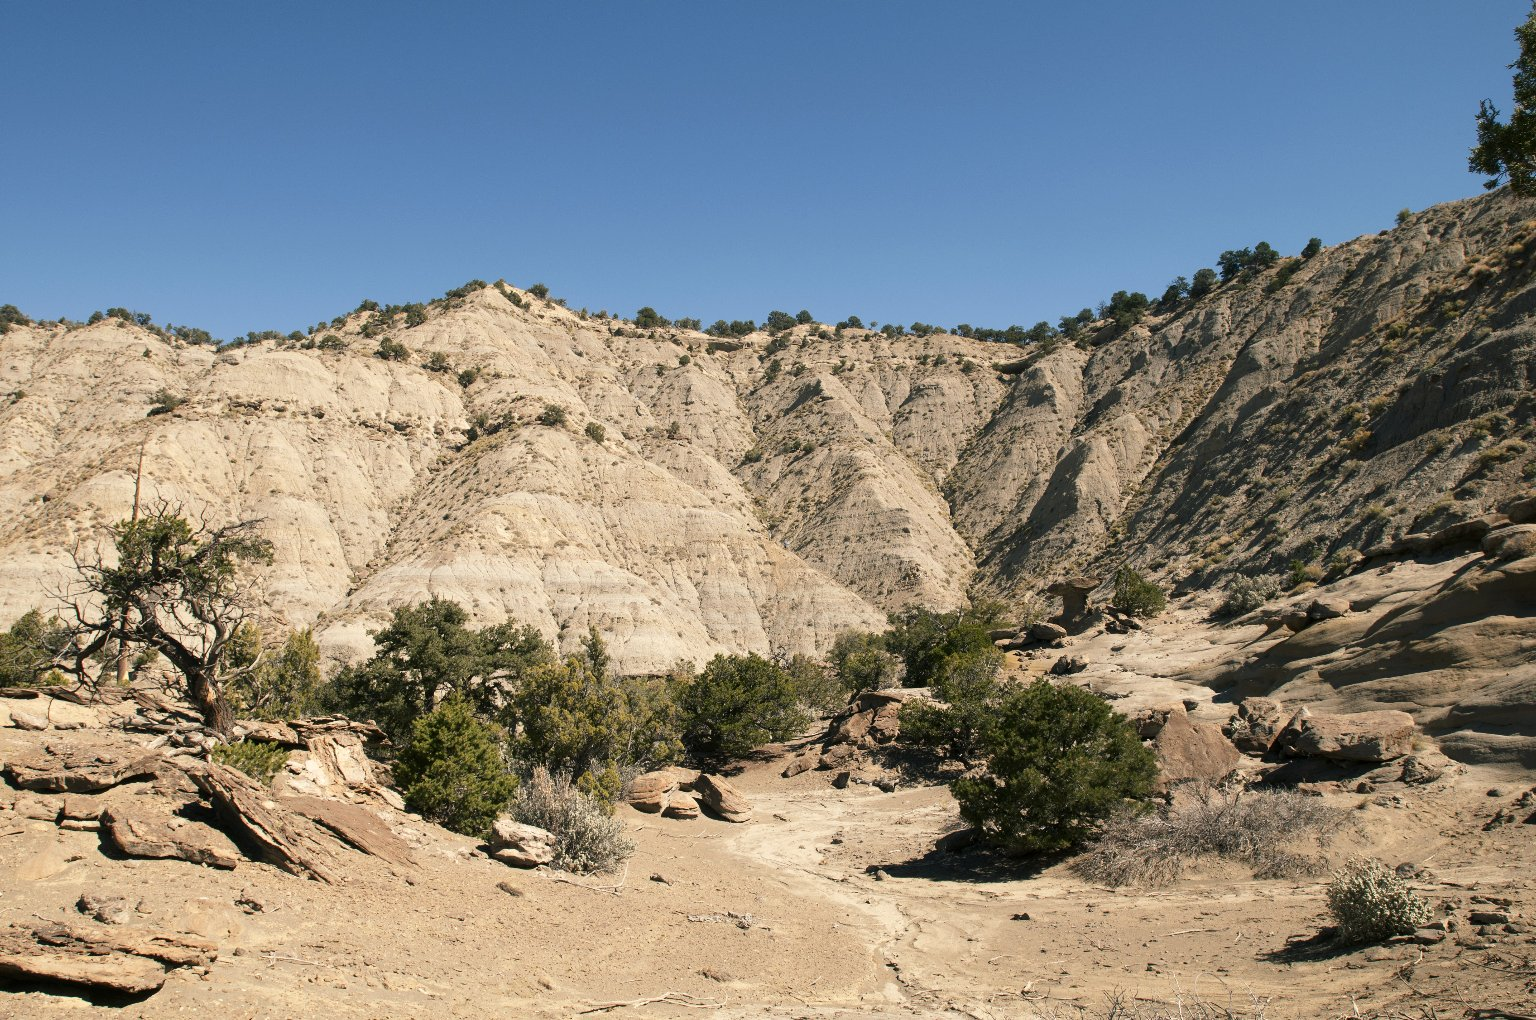 Distant view of two dig sites on the Kaiparowits Plateau.